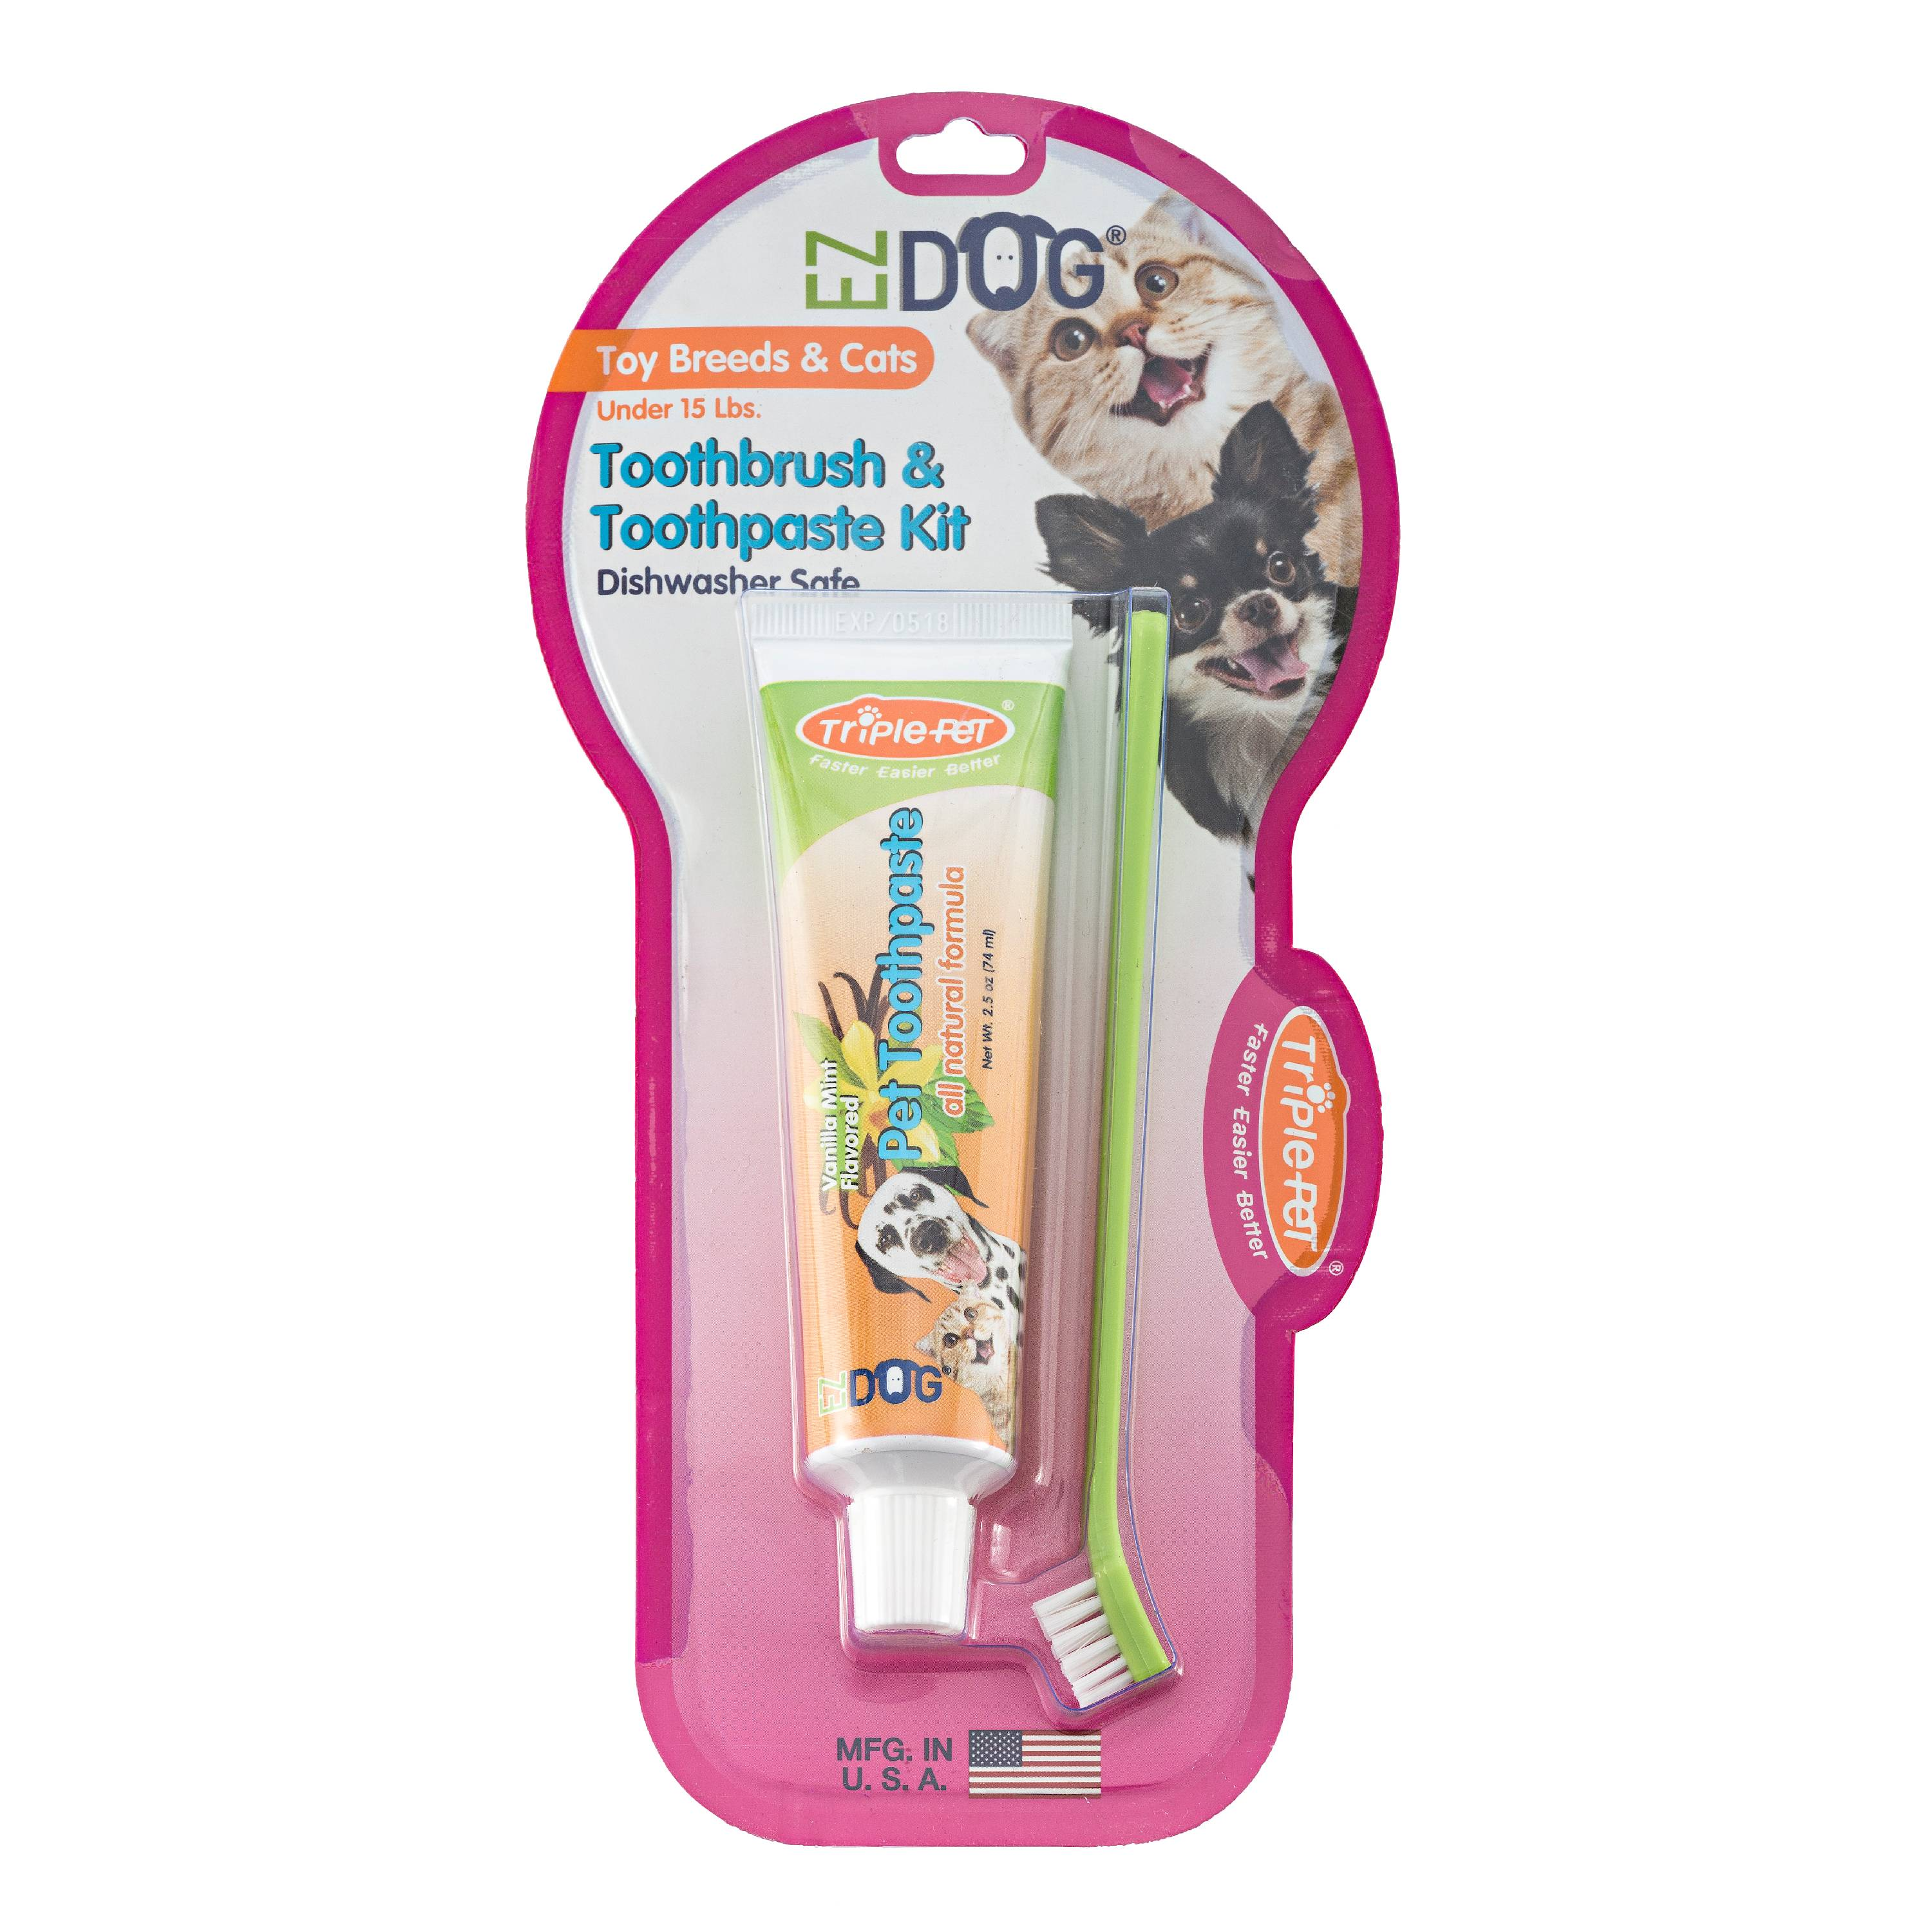 Triple Pet EZ Dog Toothbrush and Toothpaste Kit